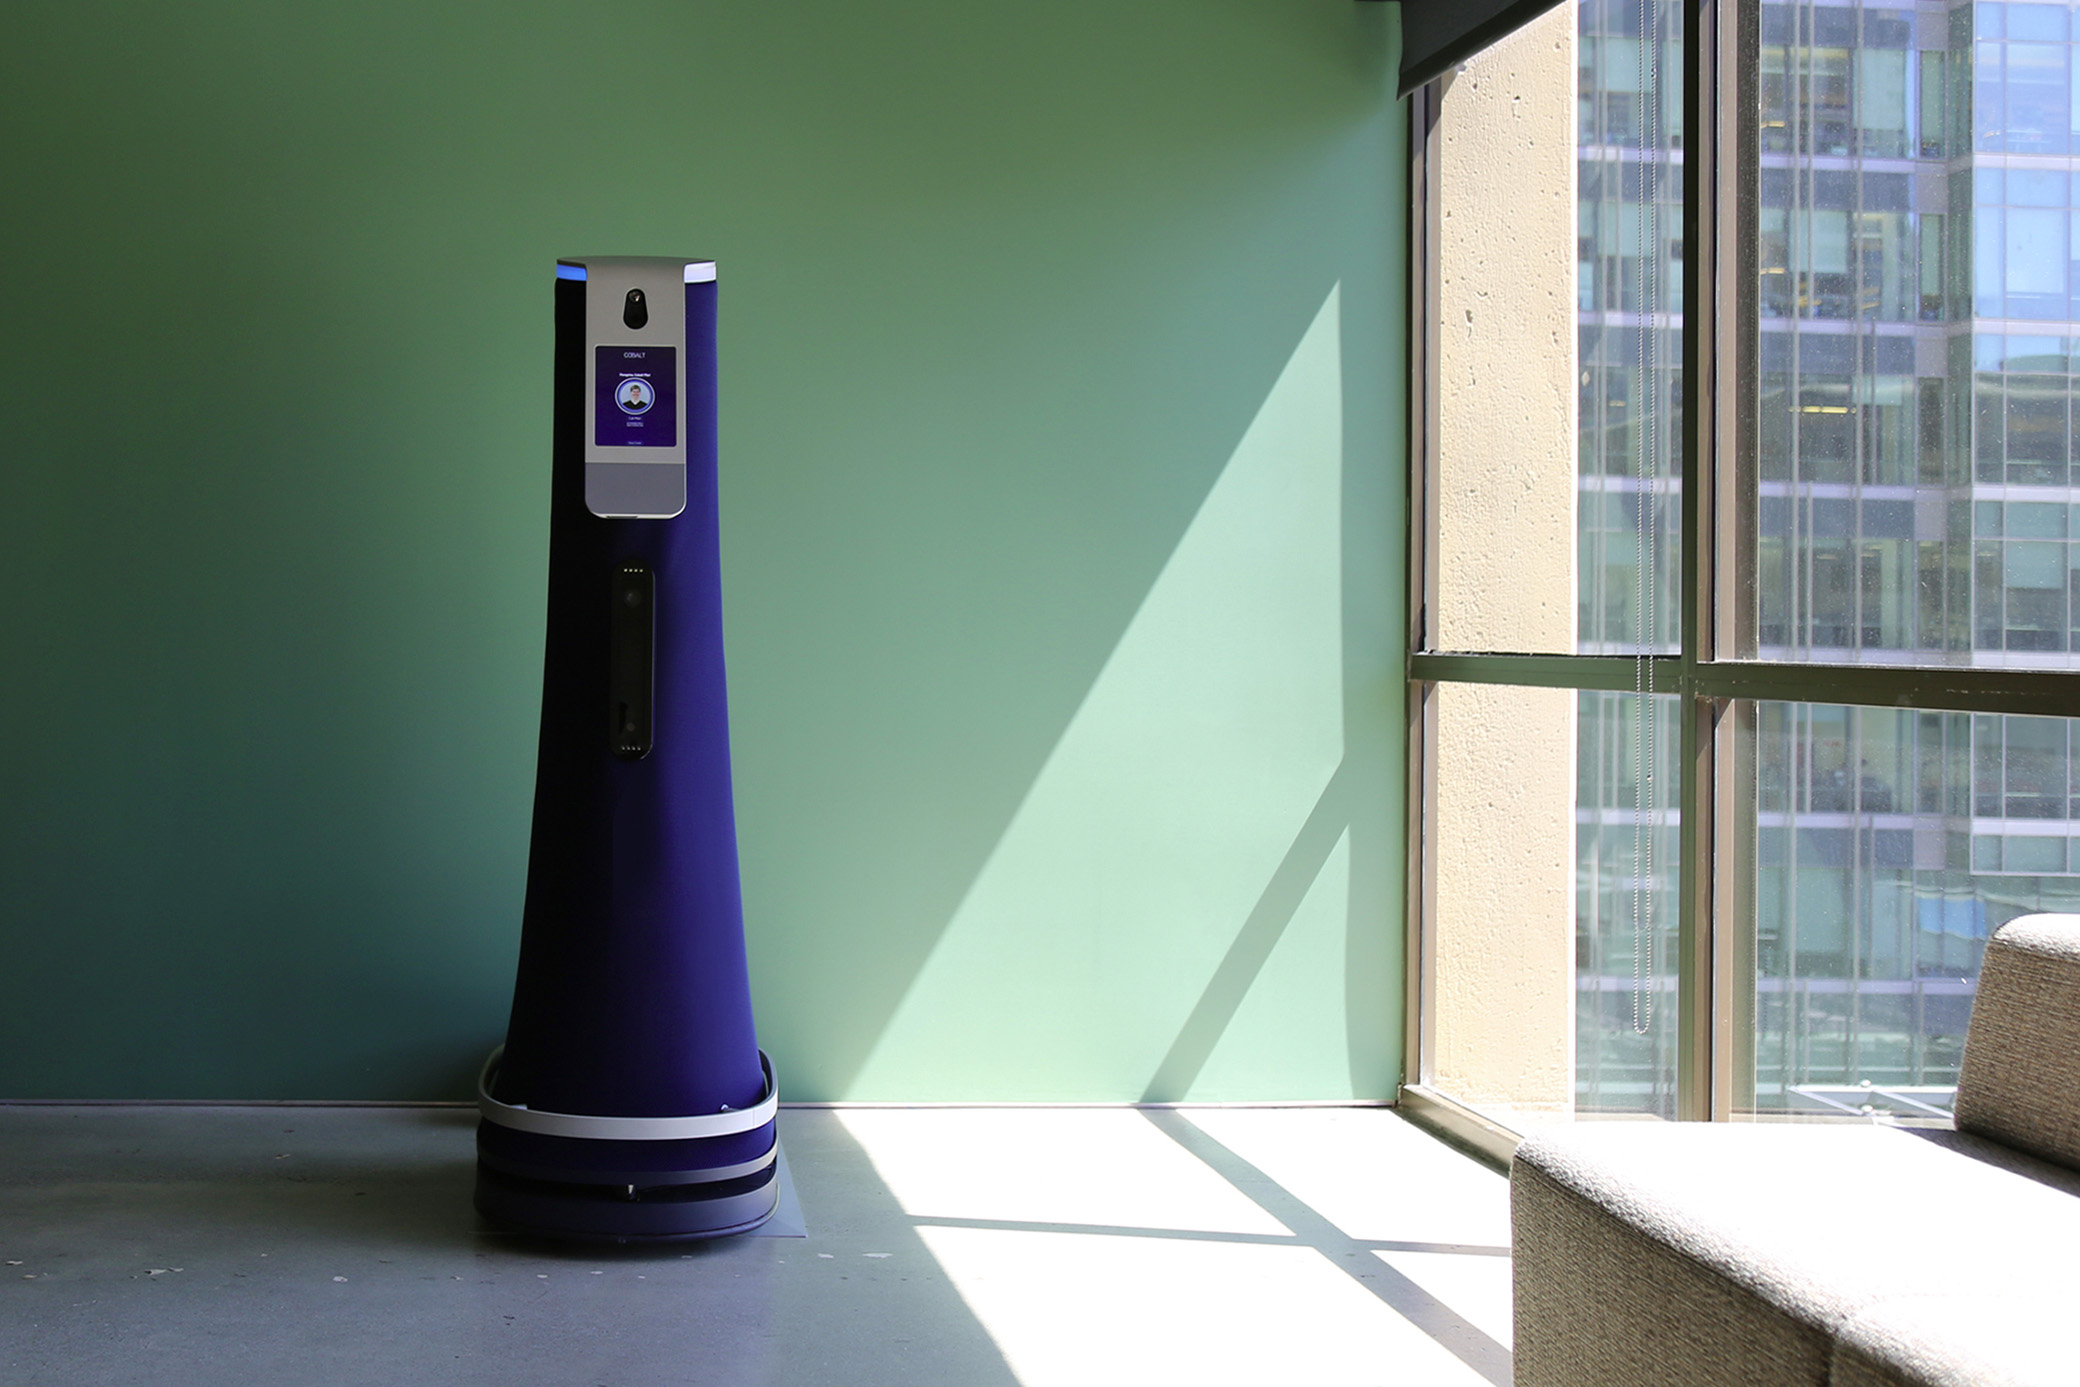 Cobalt Robot for office security